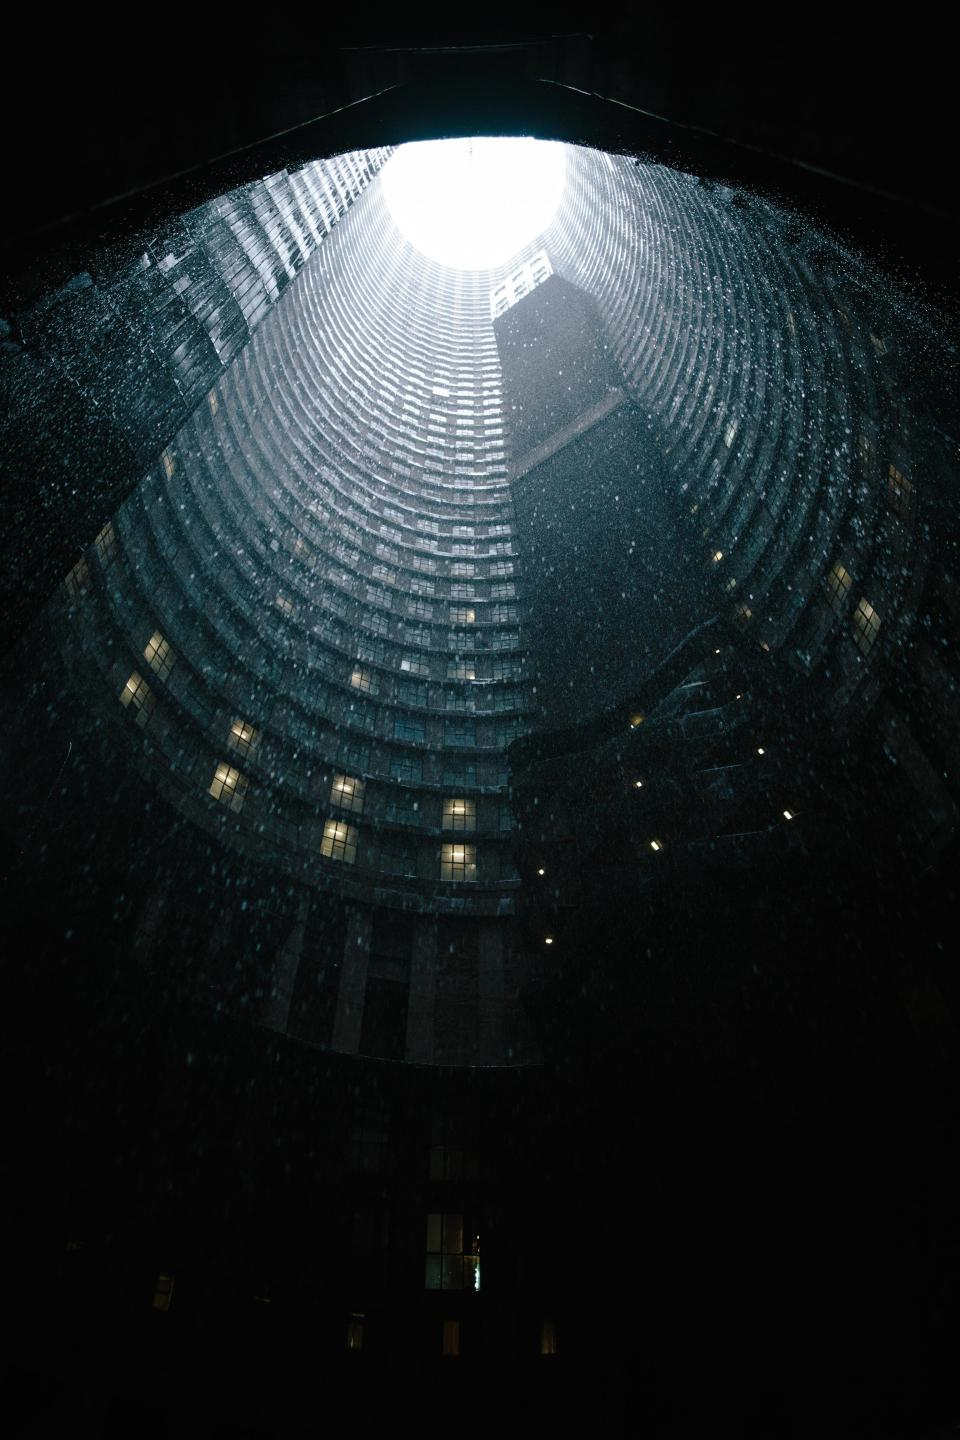 architecture, building, infrastructure, skyscraper, tower, dark, rain, raining